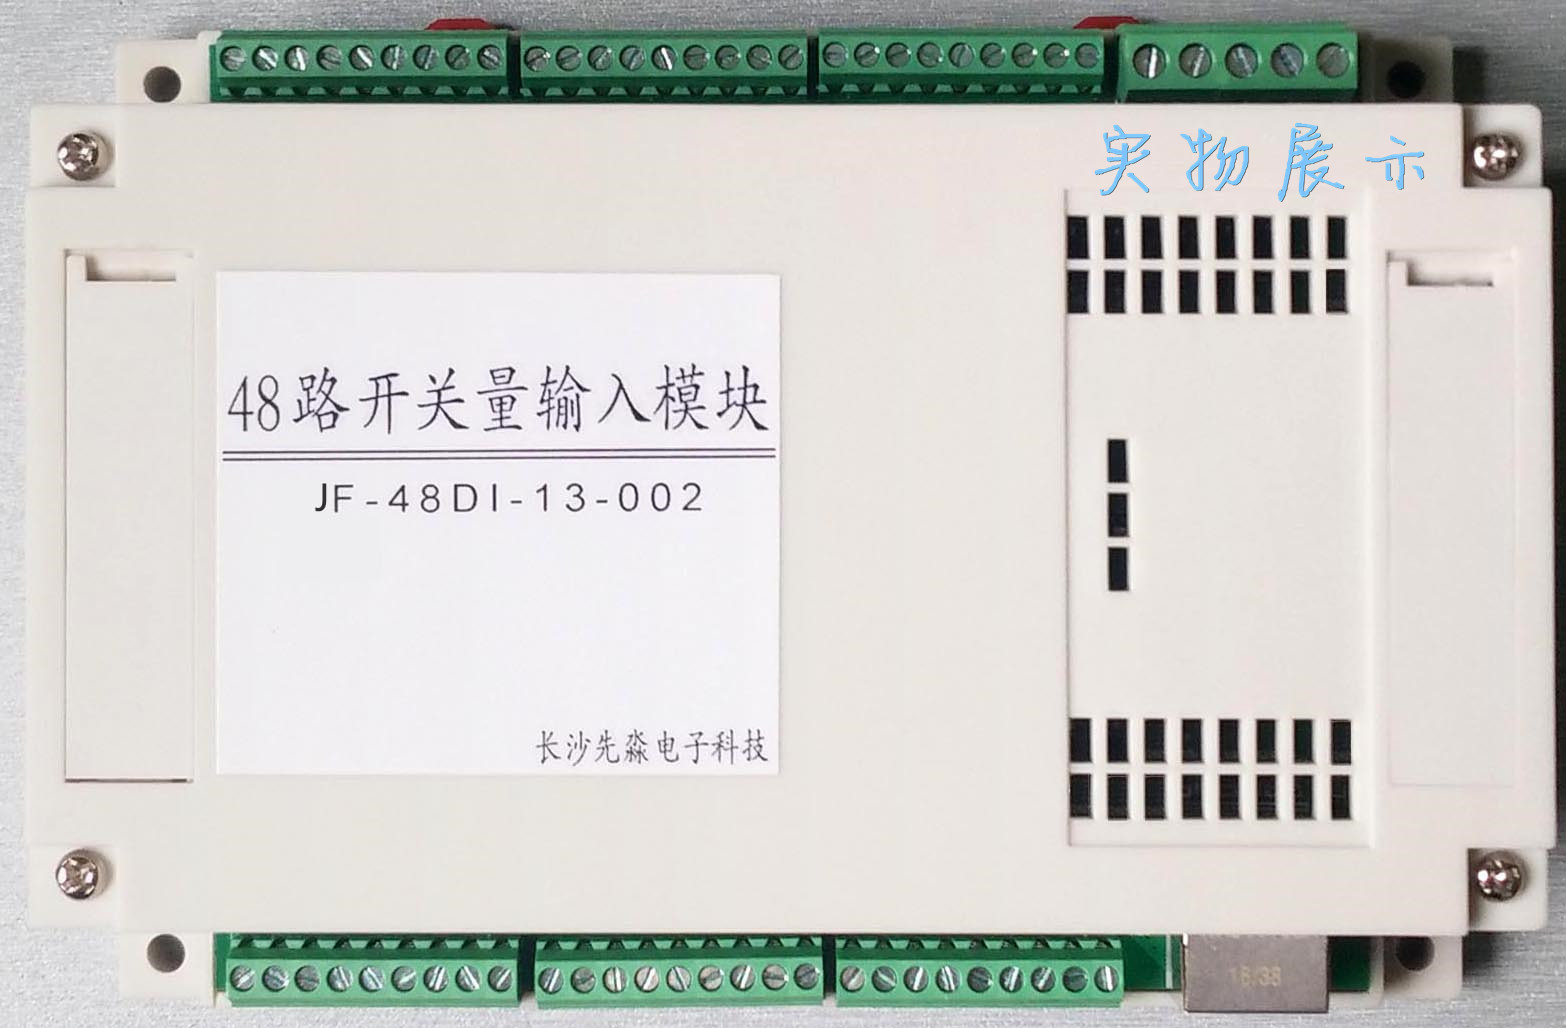 48 way switch quantity acquisition module isolation MODBUS-TCP Ethernet Support / total of Yin Yang